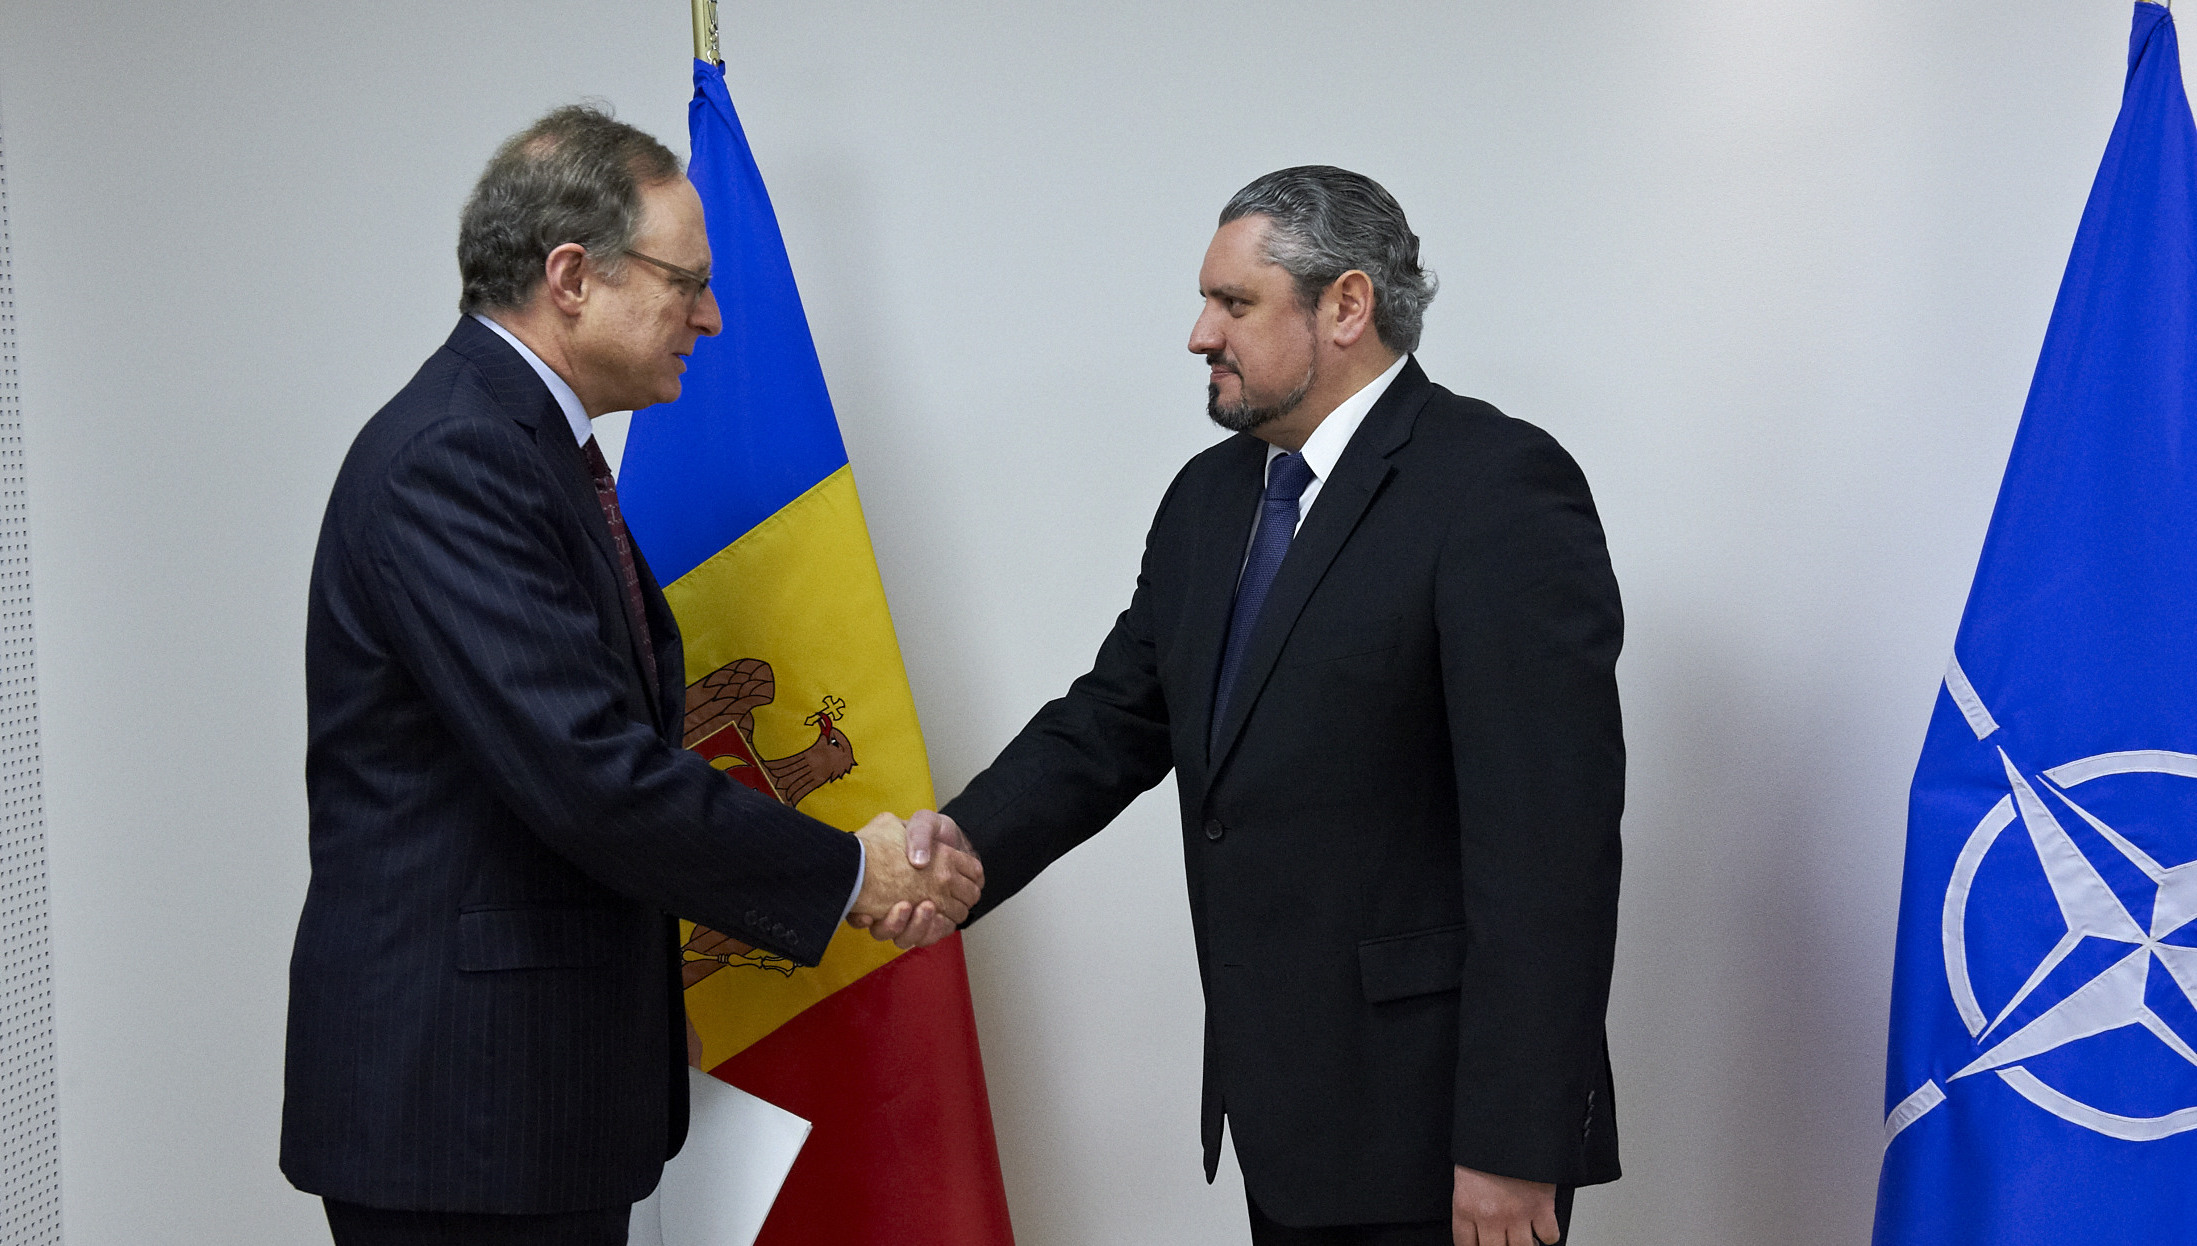 The Minister of Foreign Affairs of Moldova visits NATO